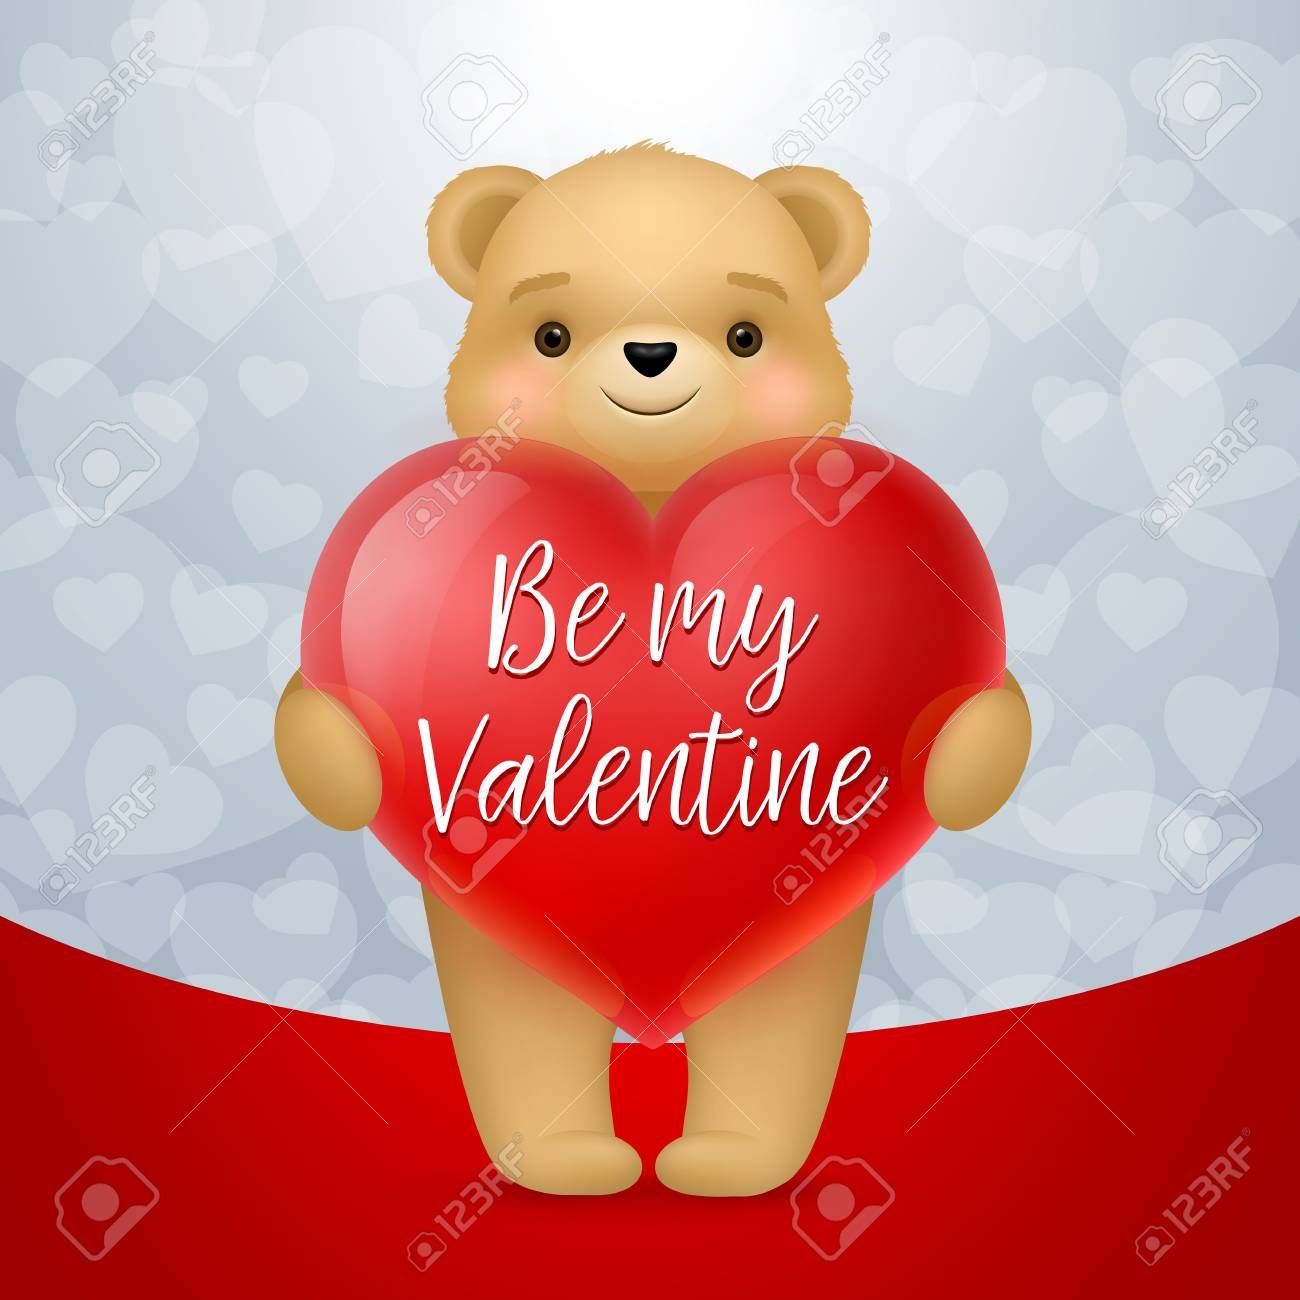 Be My Valentine Lettering On Heart Saint Valentines Day Greeting